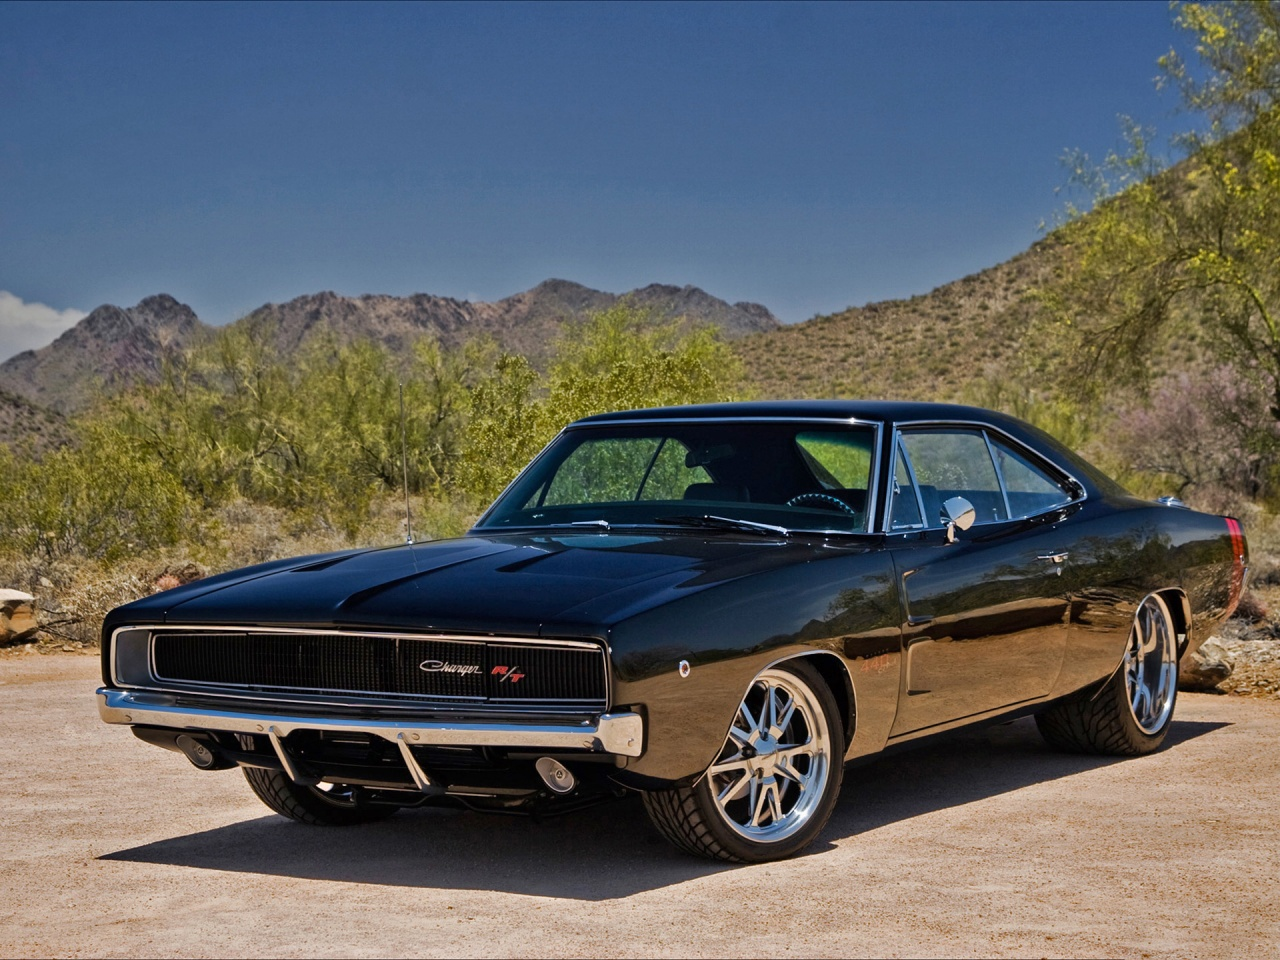 rightnowautoparts: Mopar Muscle Cars